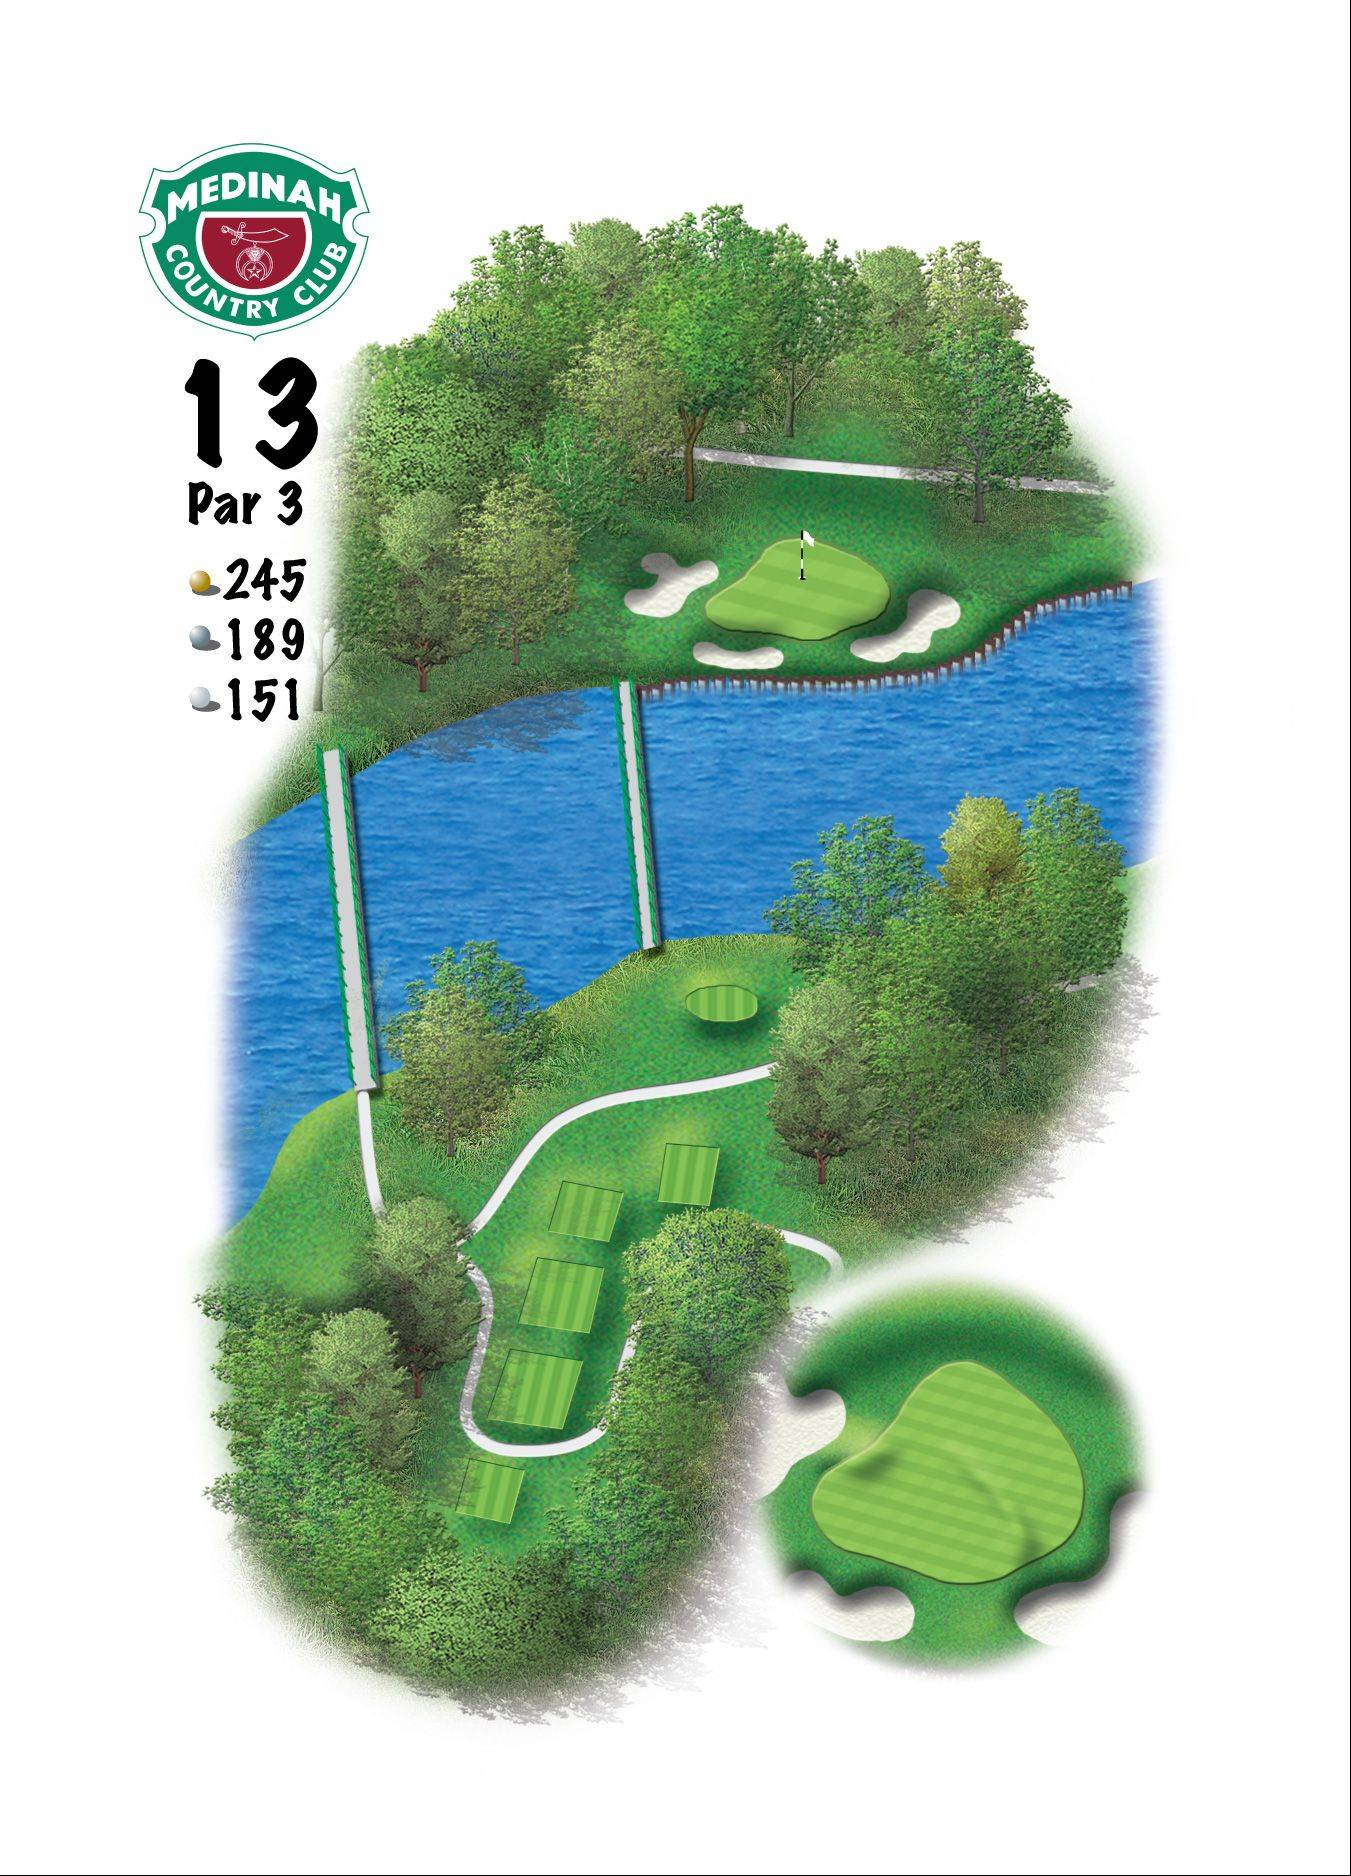 Hole 13 of the Ryder Cup course at Medinah. 245 yards/223 meters, Par-3, Known over the years as Medinah's signature hole, the green on No. 13 is now guarded by three bunkers, and slopes from right-to-left. The club choice will be the challenge as players contend with the winds off Lake Kadijah.